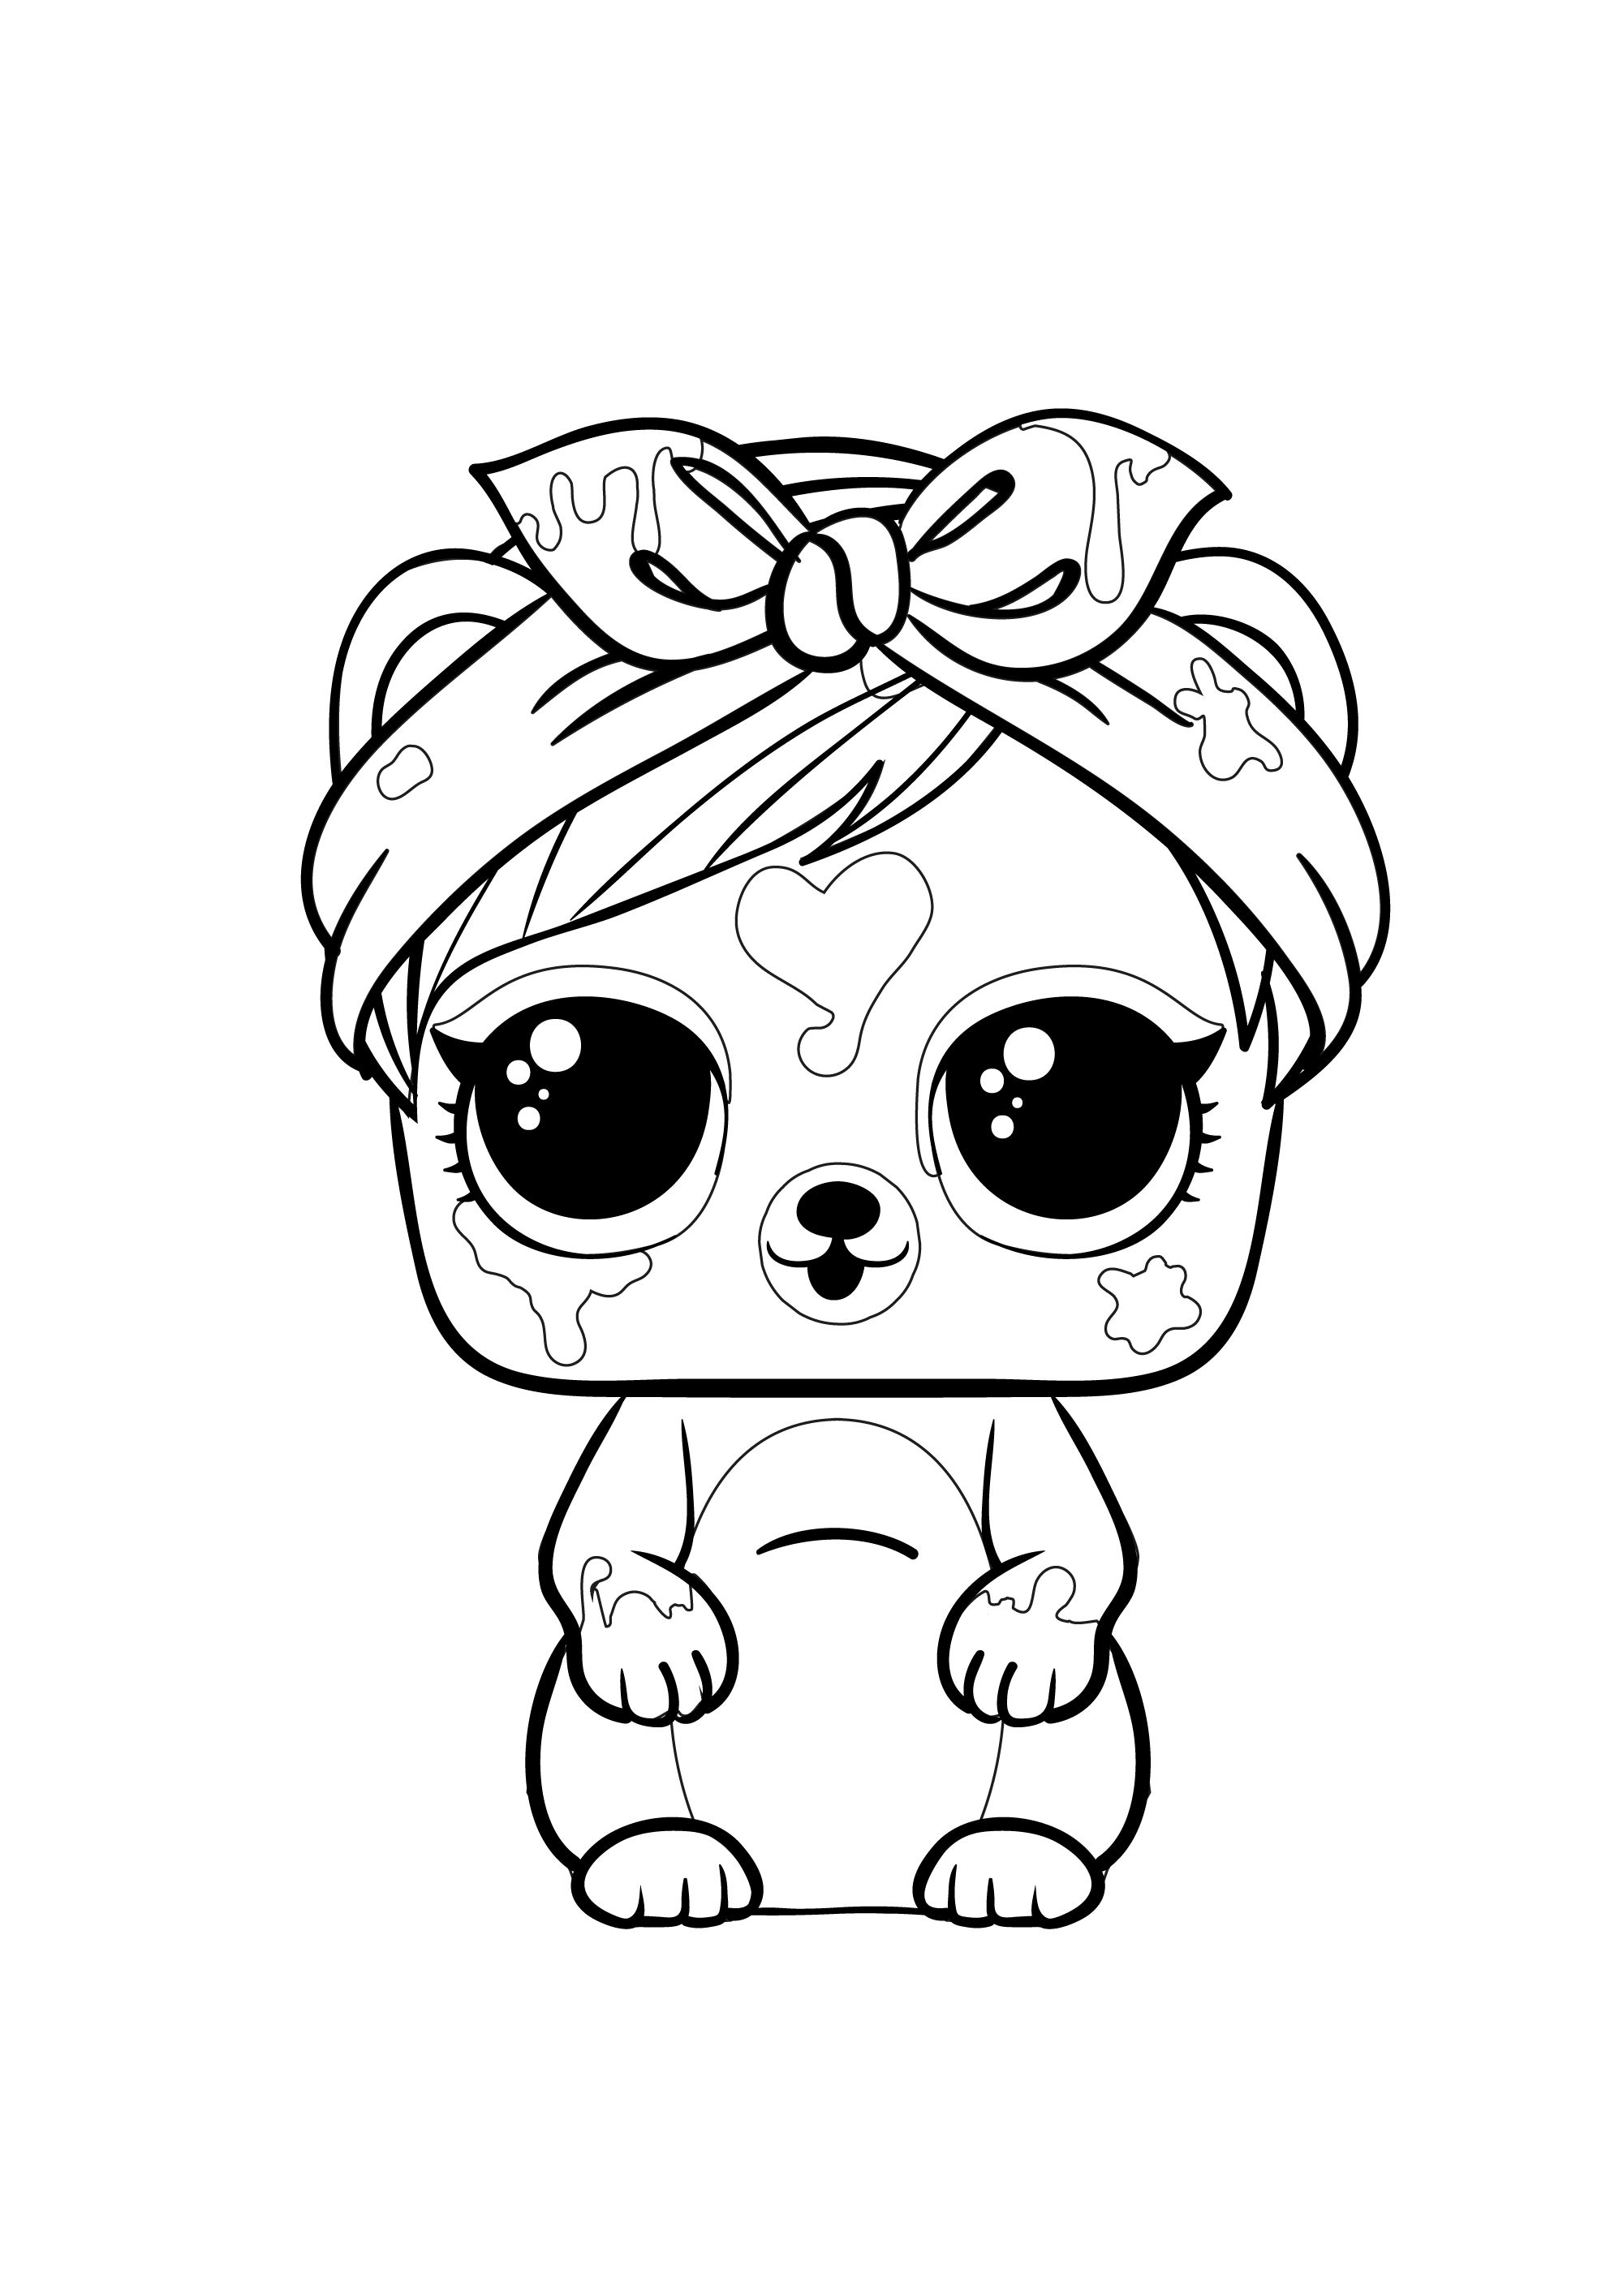 Pin By Maria Camacho On Liens A Verifier Cute Coloring Pages Free Coloring Pictures Coloring Books